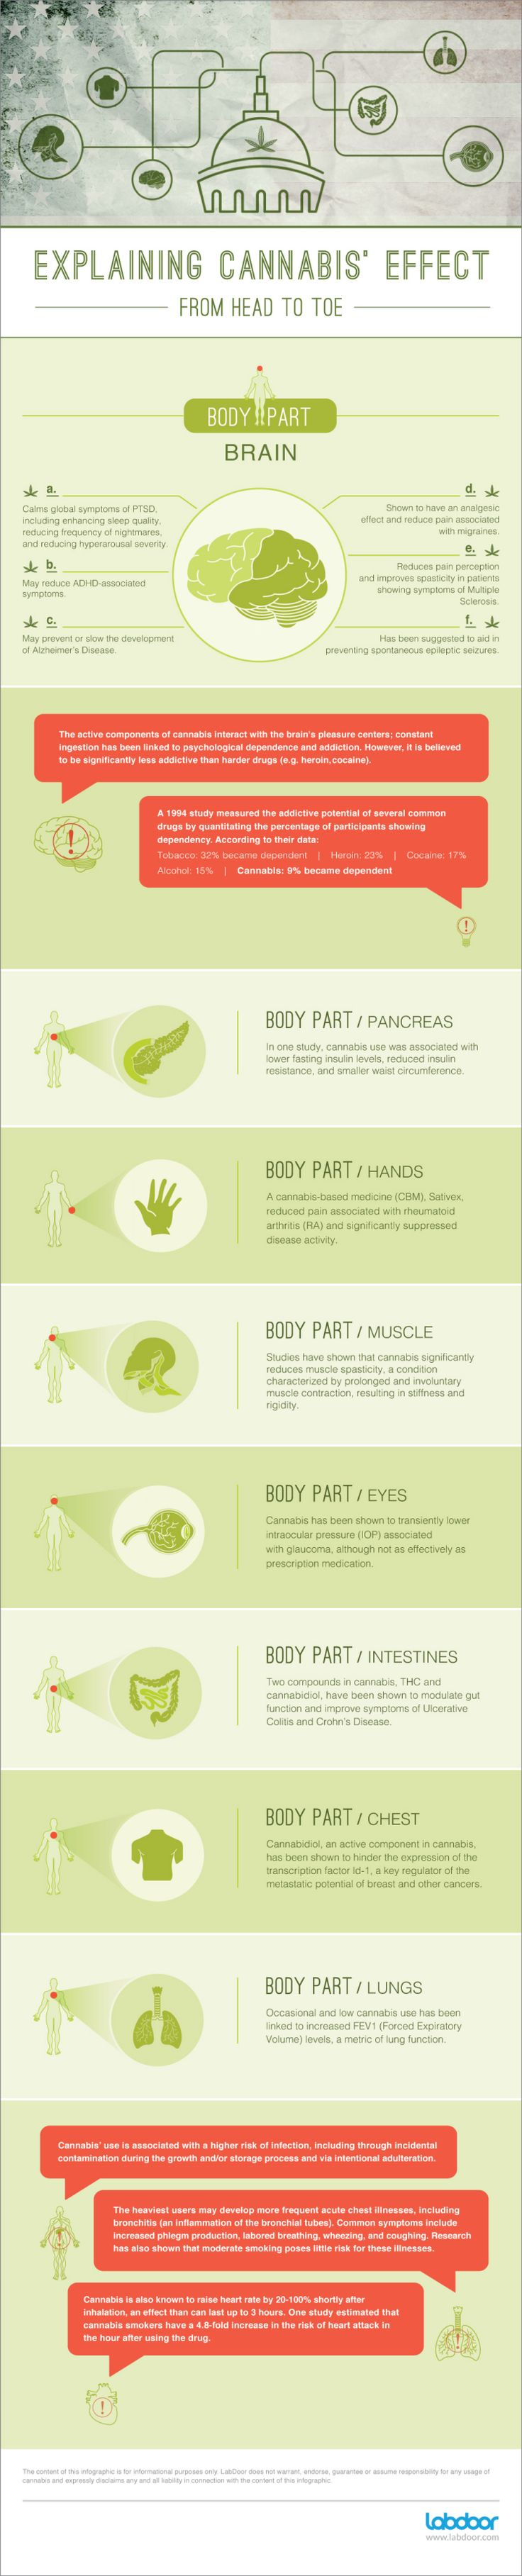 Explaining cannabis' effects from head to toe [infographic] - Holy Kaw!